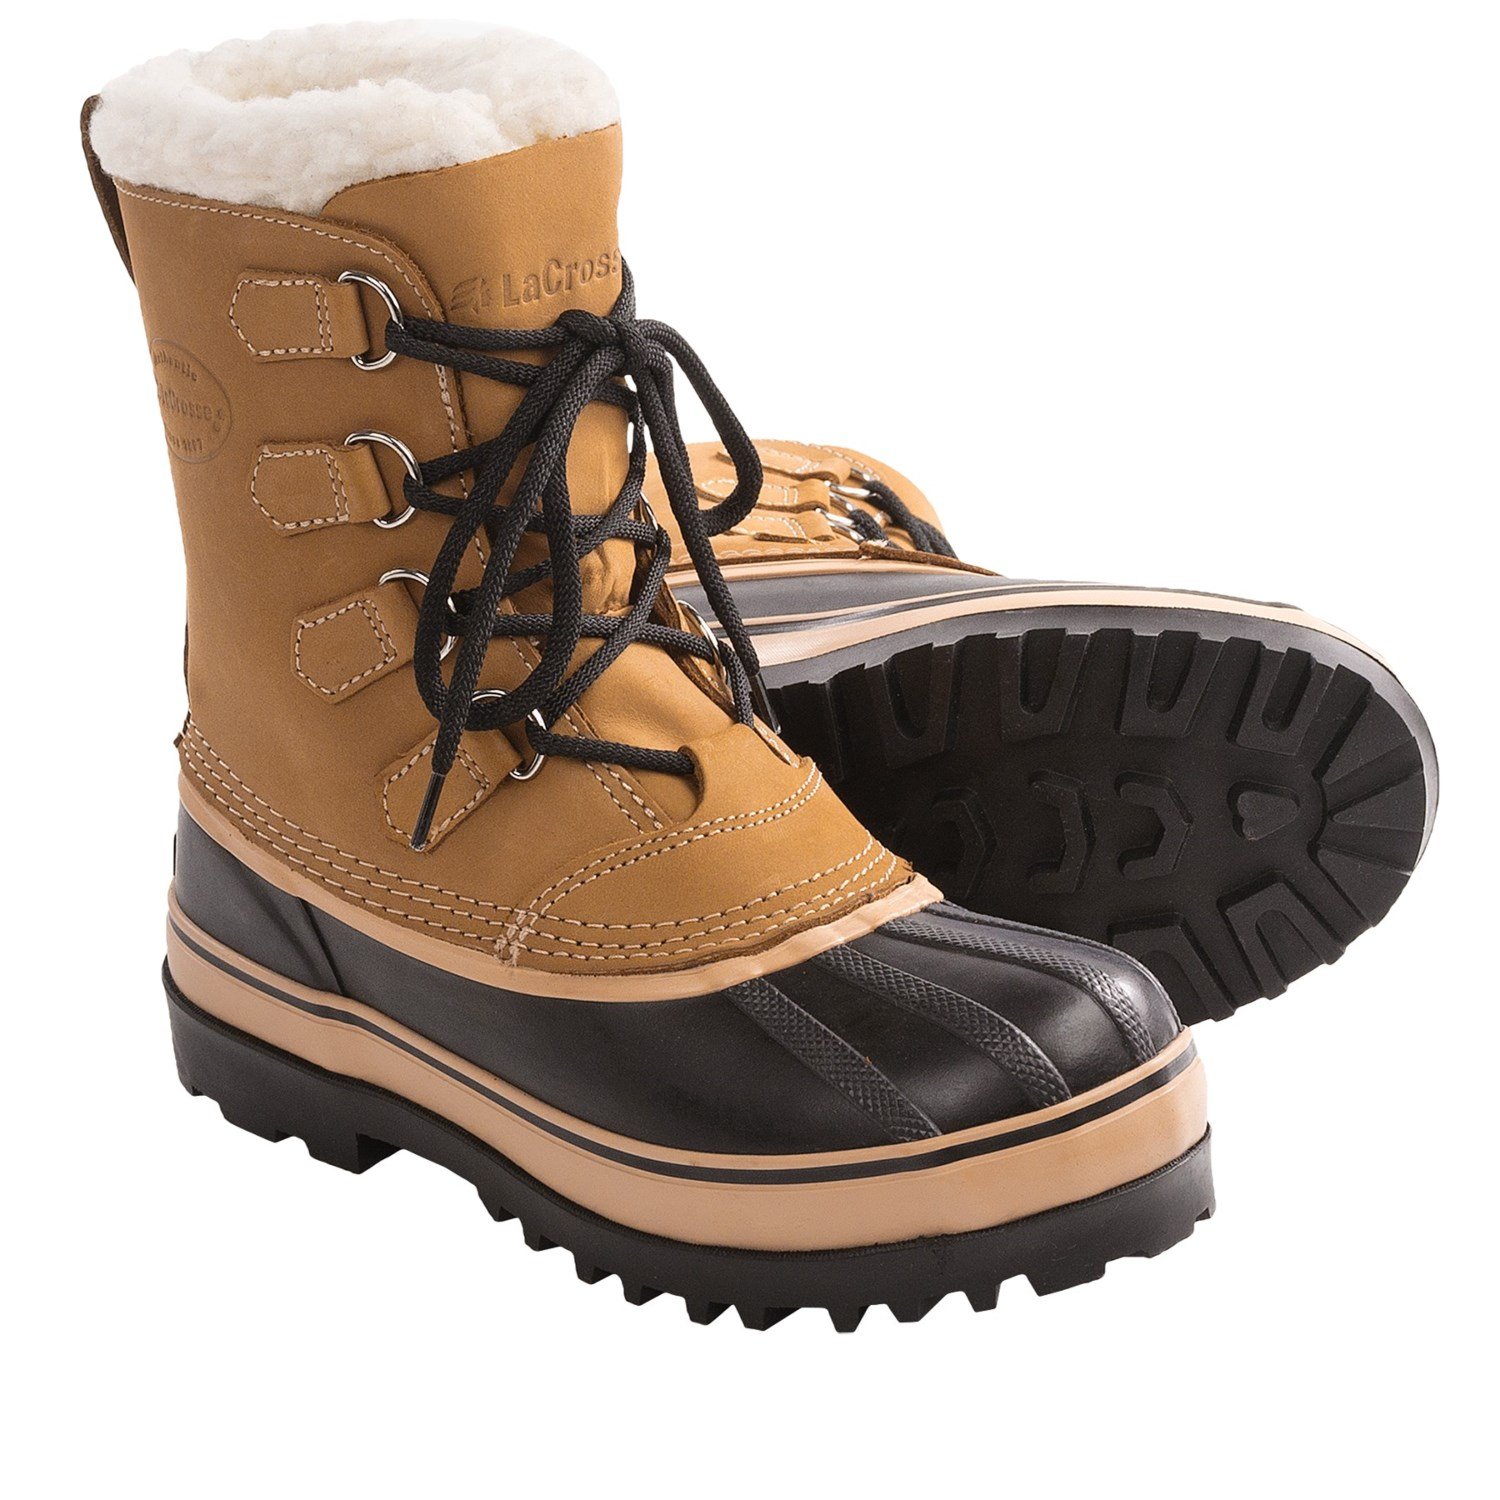 LaCrosse Ridgetop Pac Boots - Waterproof, Insulated, 10 (For Women